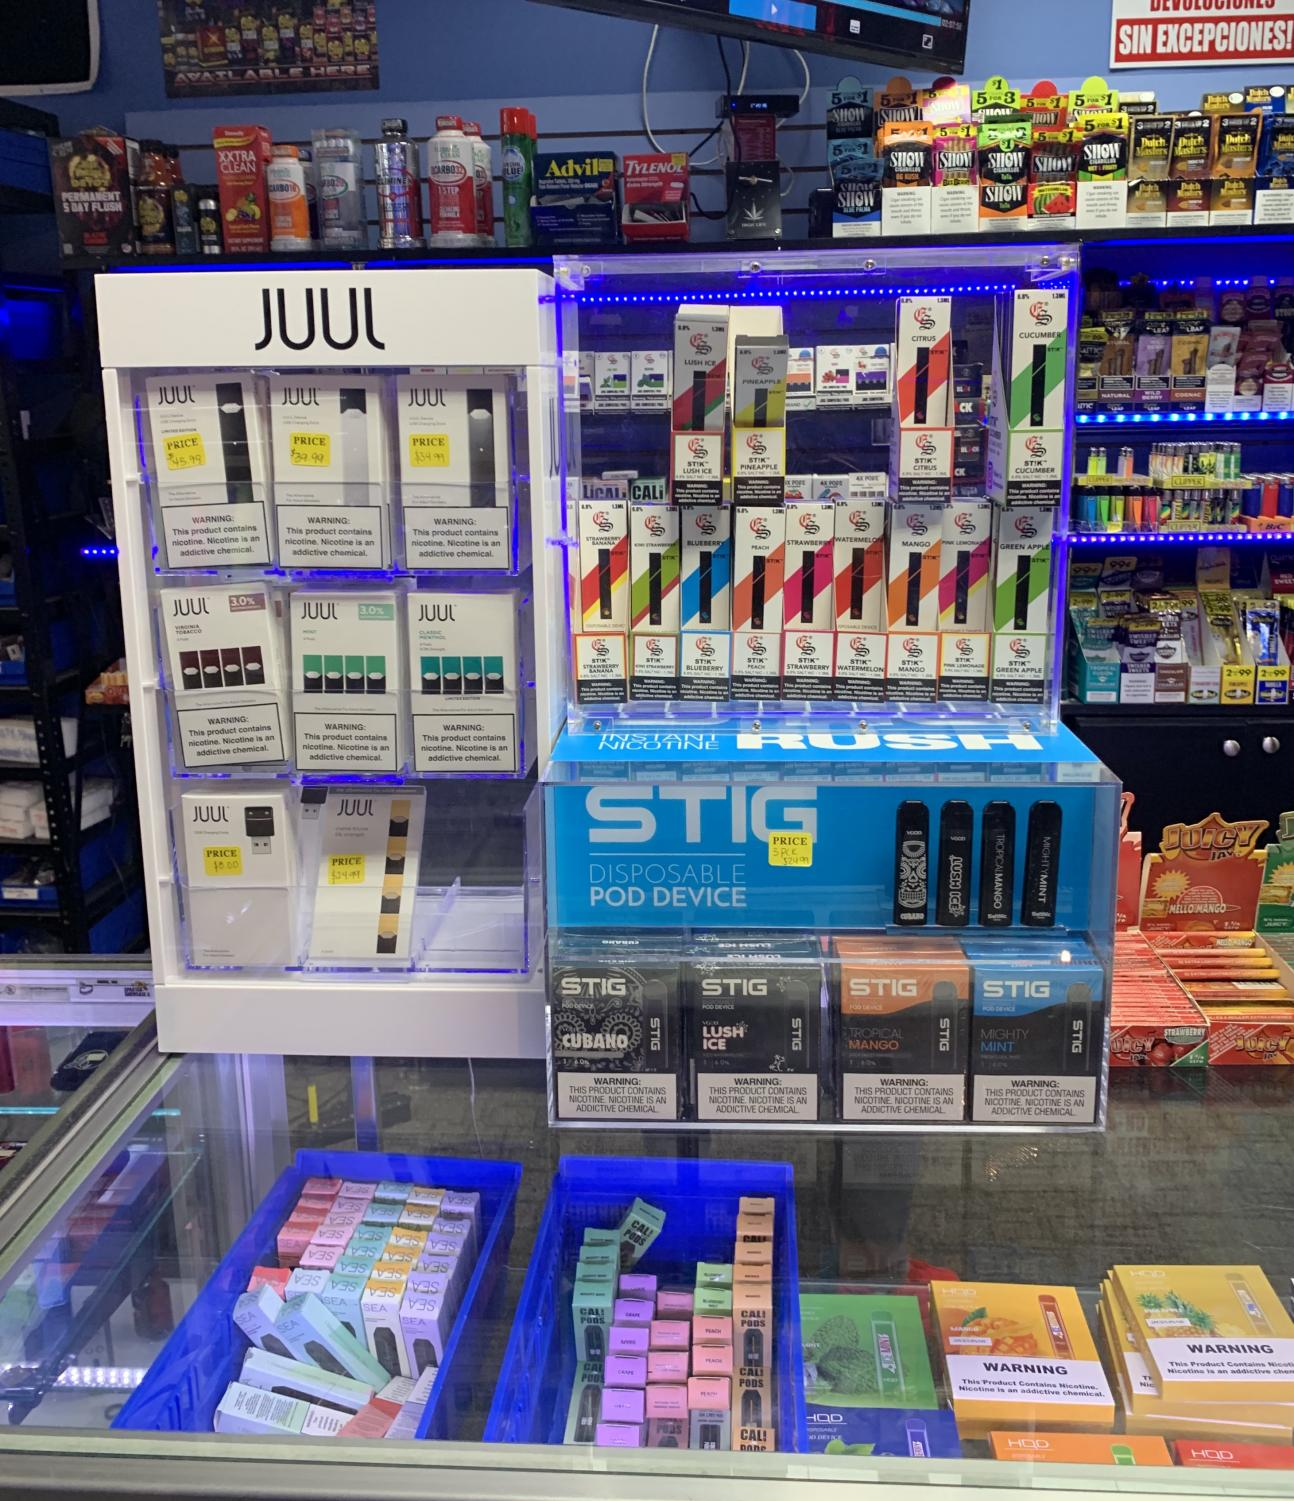 Juuls have grown to be such a marketable and profitable product that they are now being displayed as a top-seller item in smoke shops.